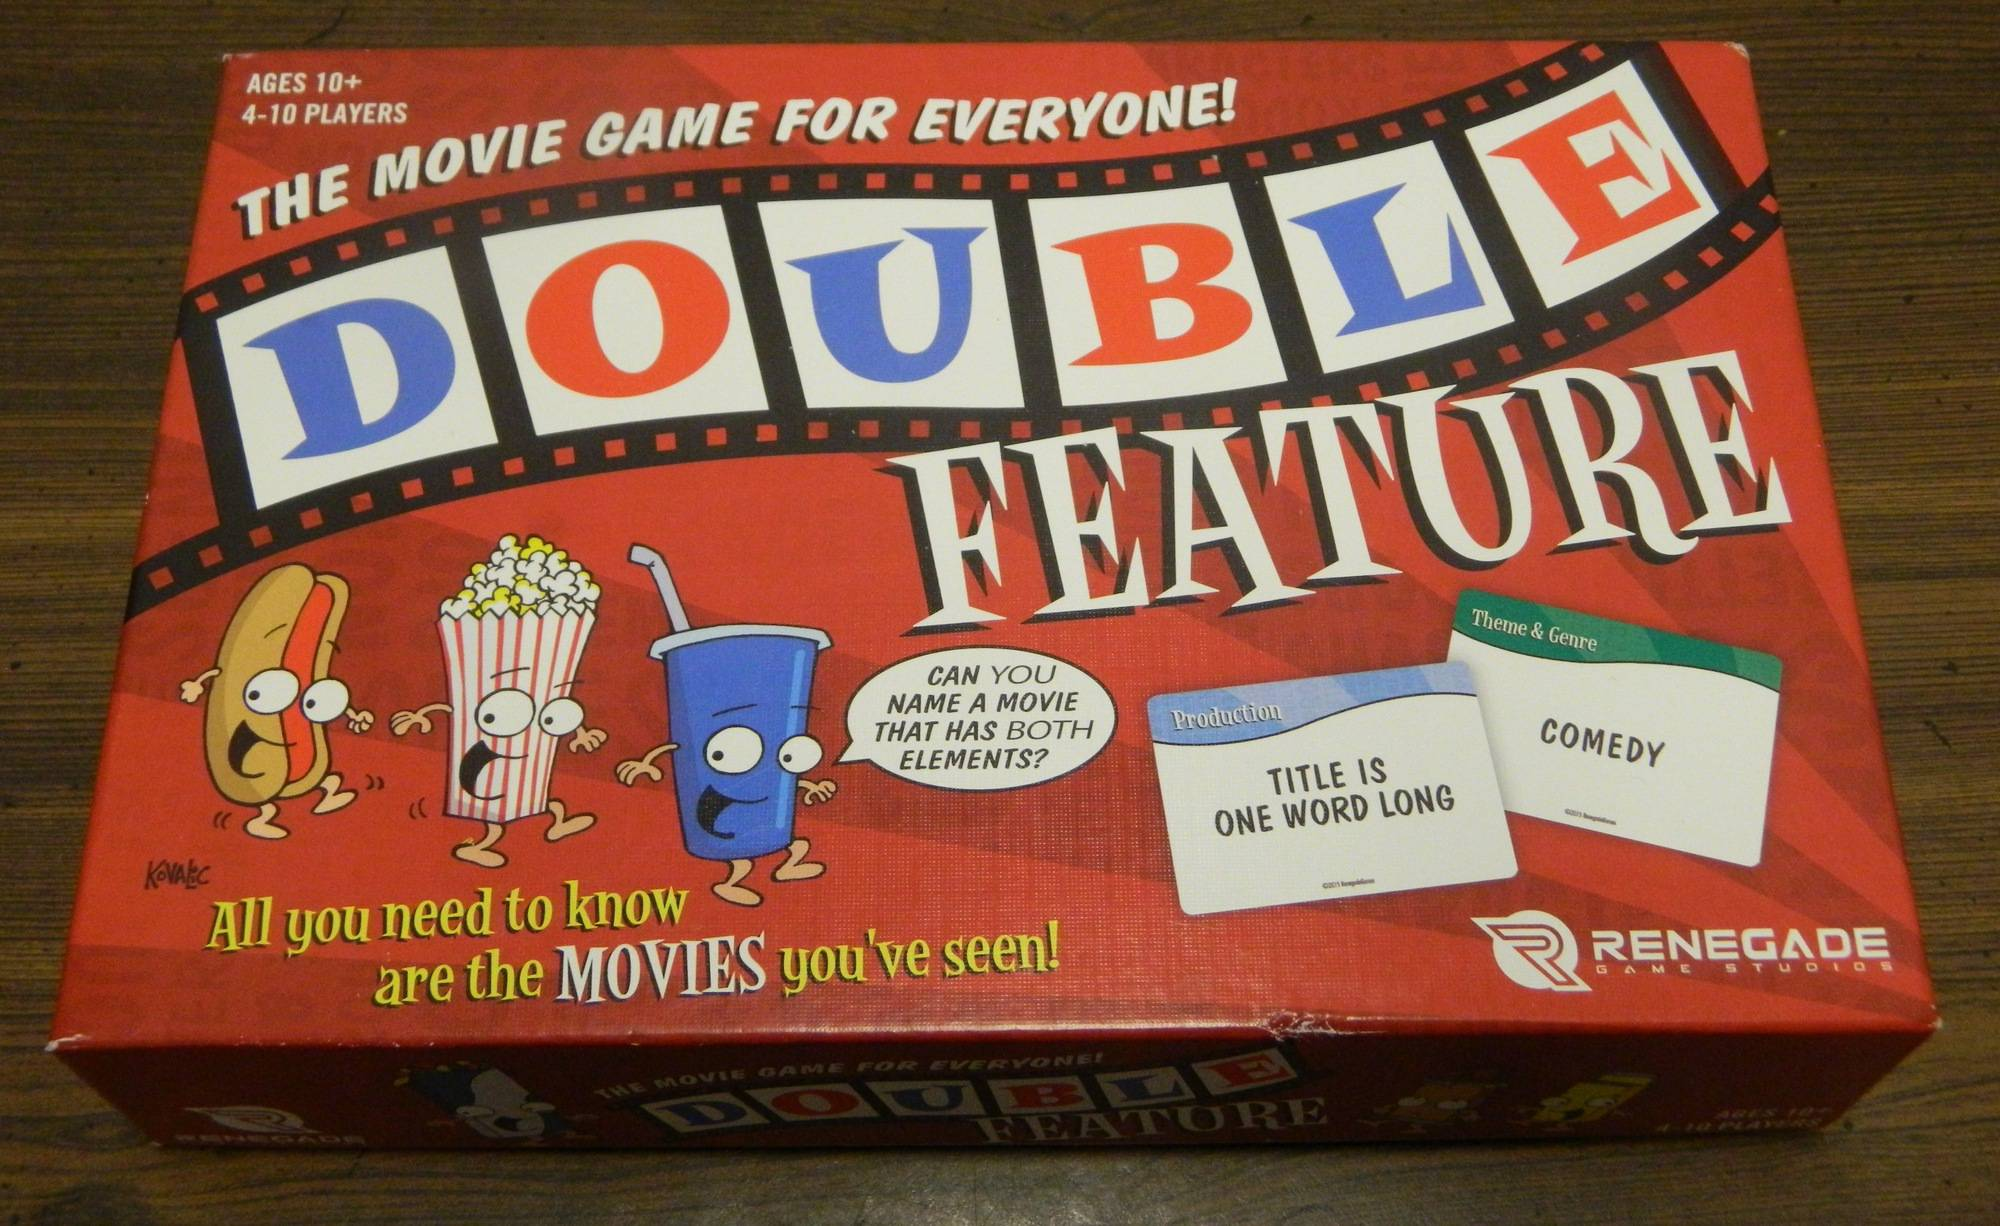 Box for Double Features